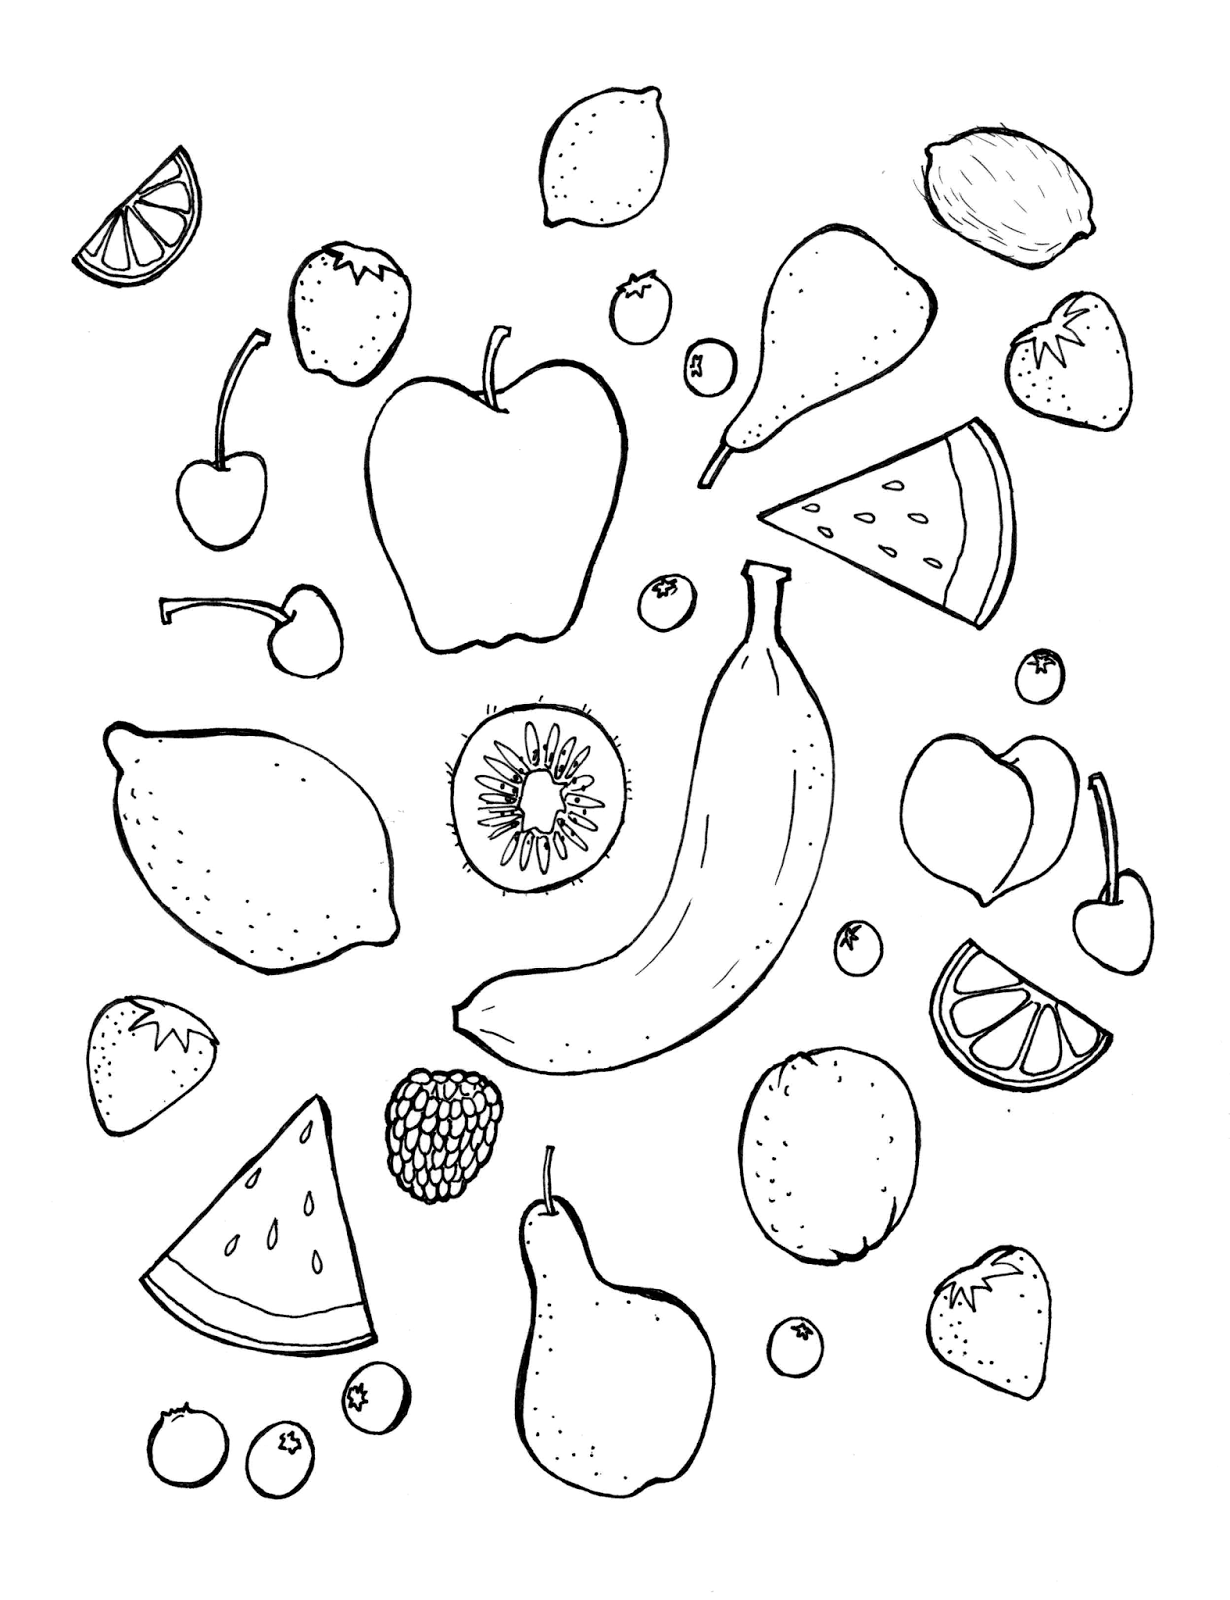 Coloring Page: Fruit!